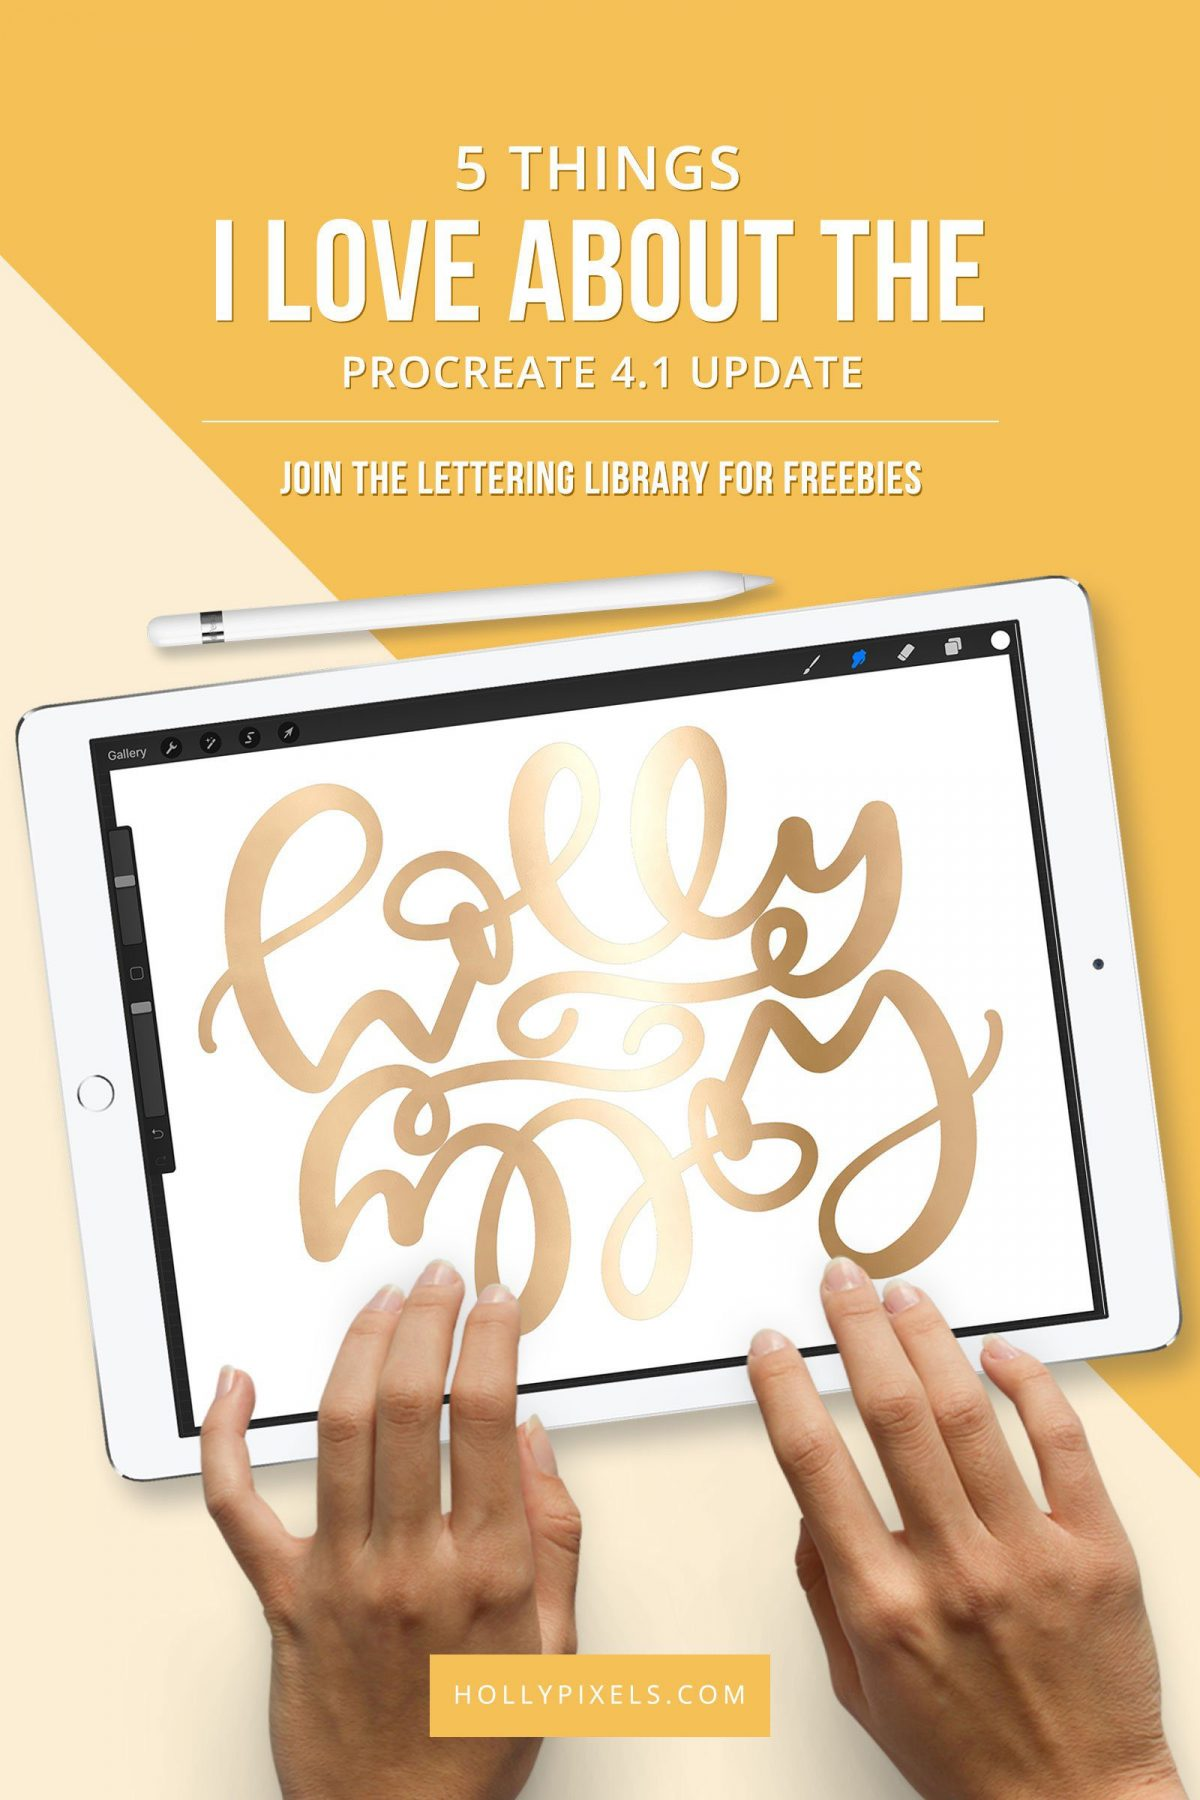 5 Things I Love About the Procreate 4.1 Update